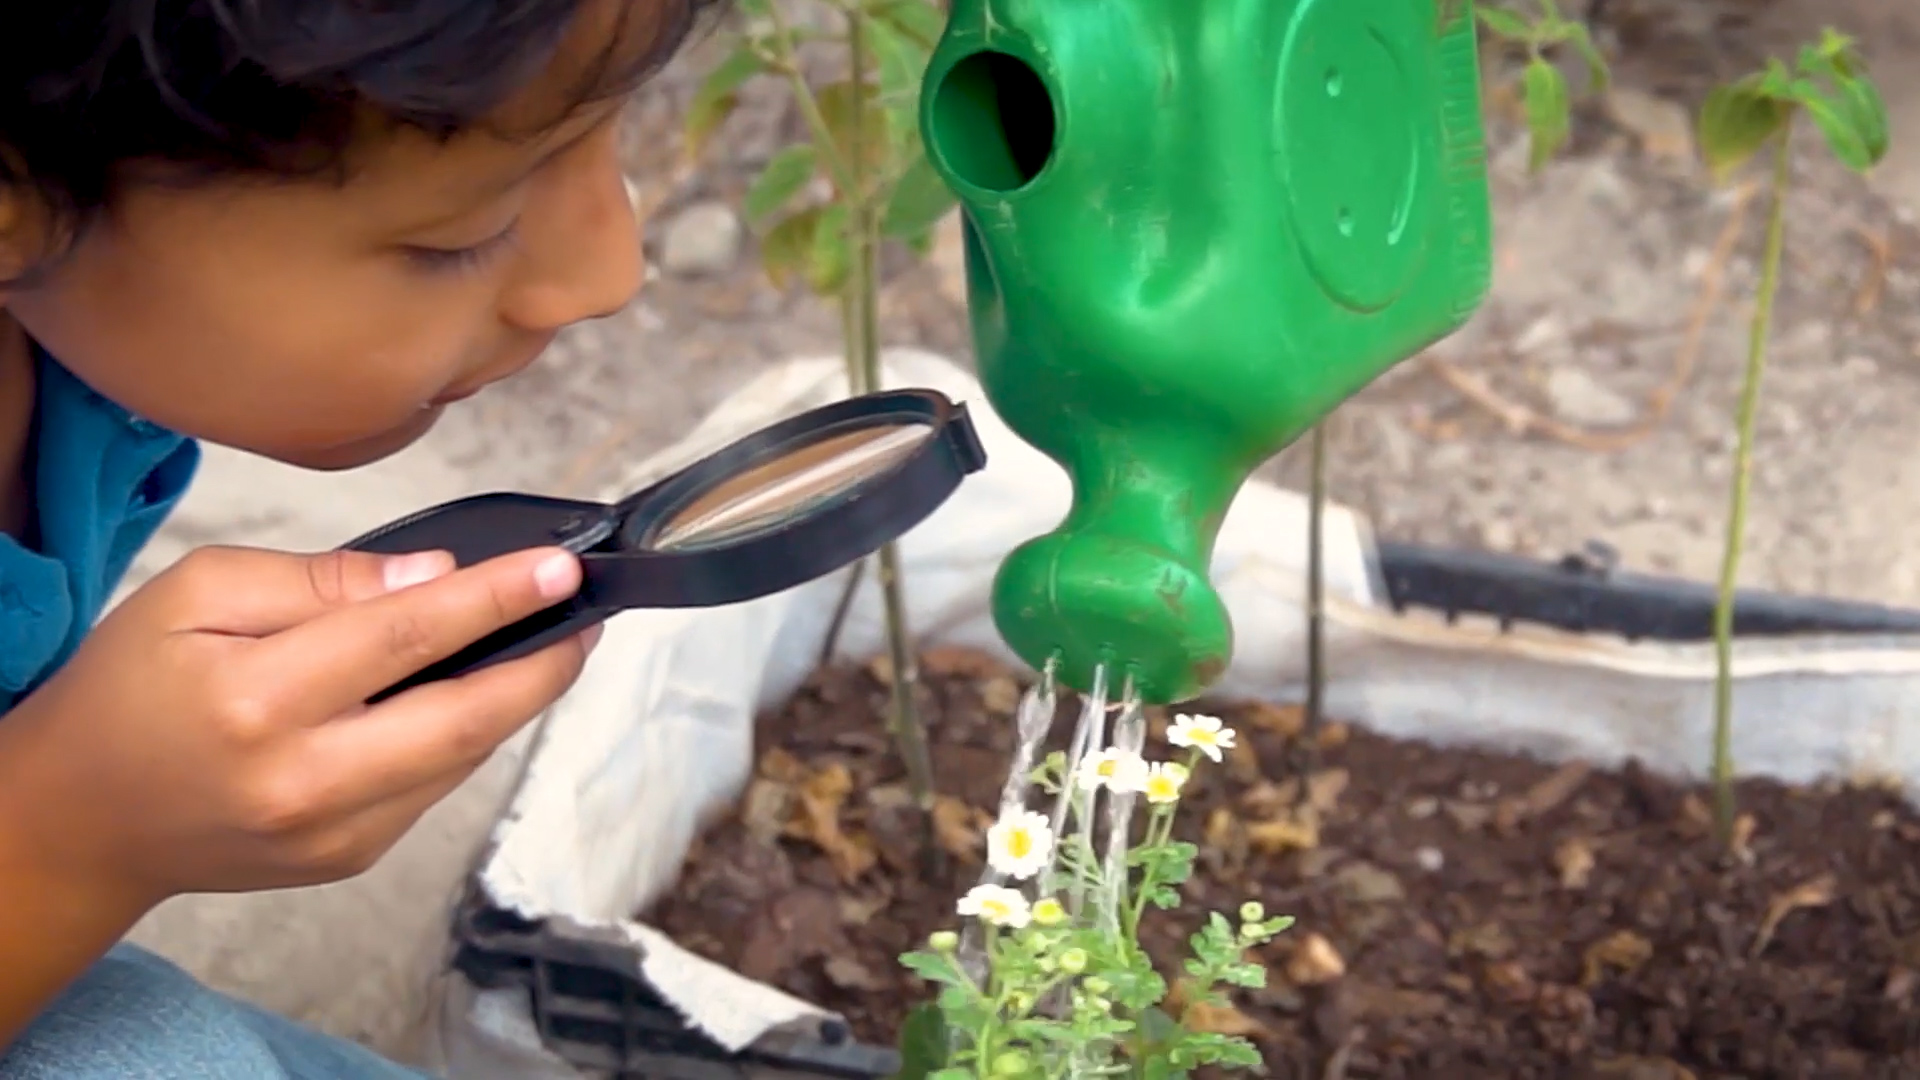 Child examines plant as he waters it